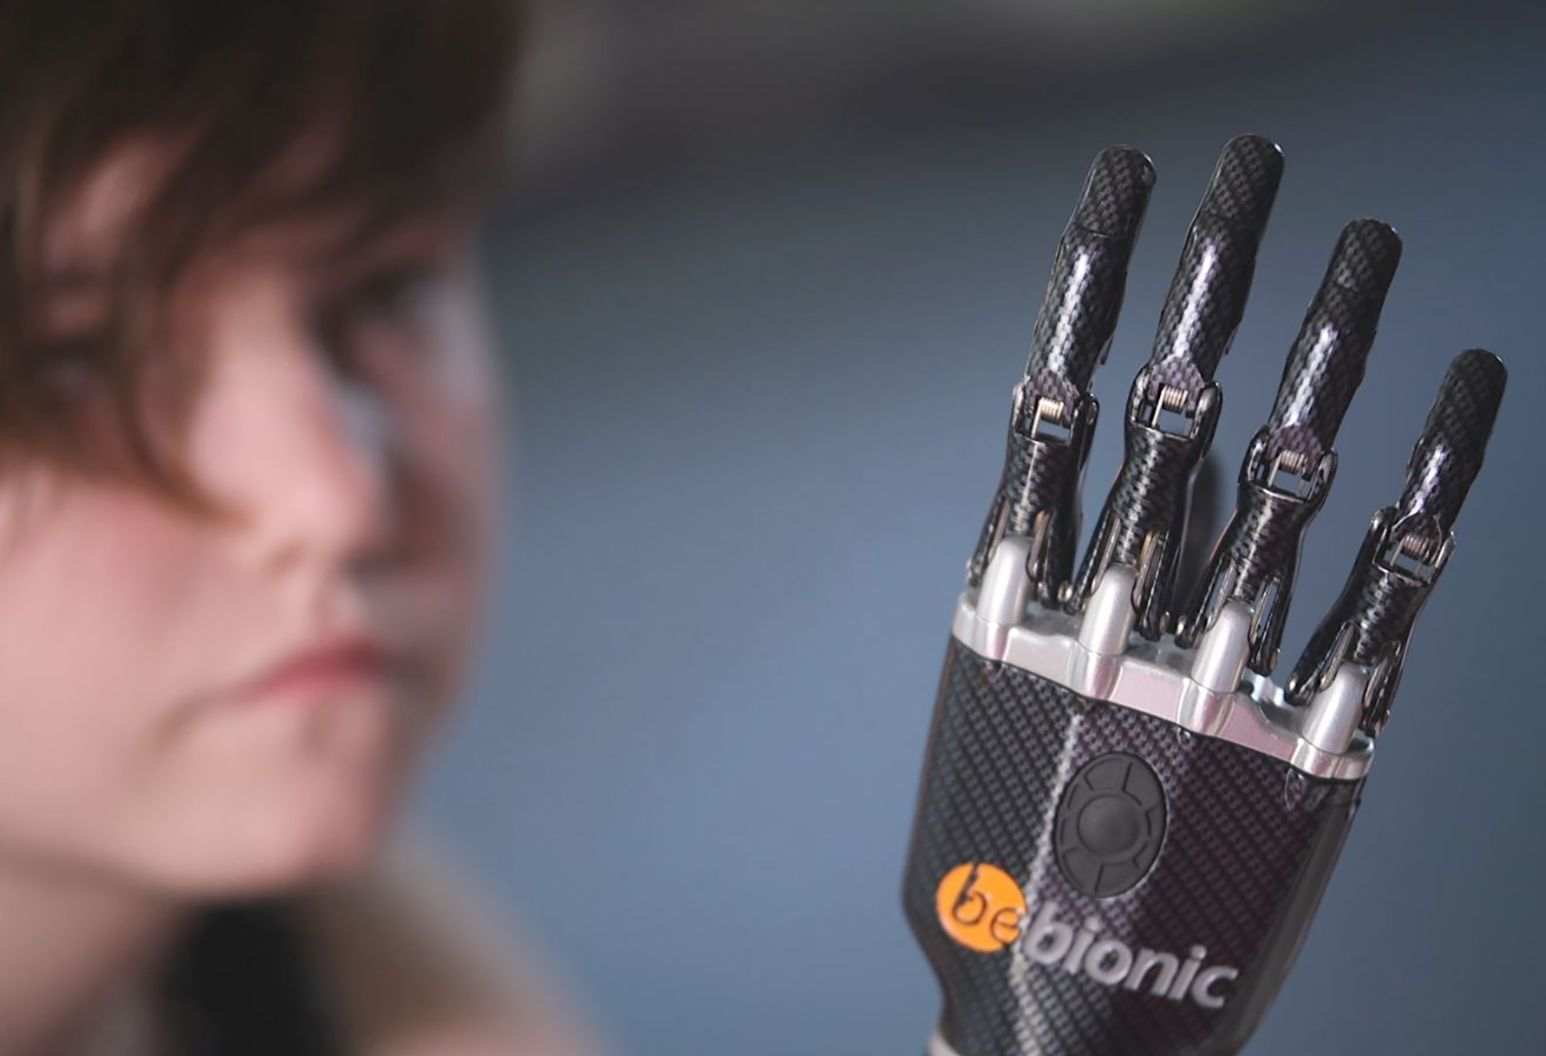 A picture of Brianna's bionic hand with her face in the background of the picture.